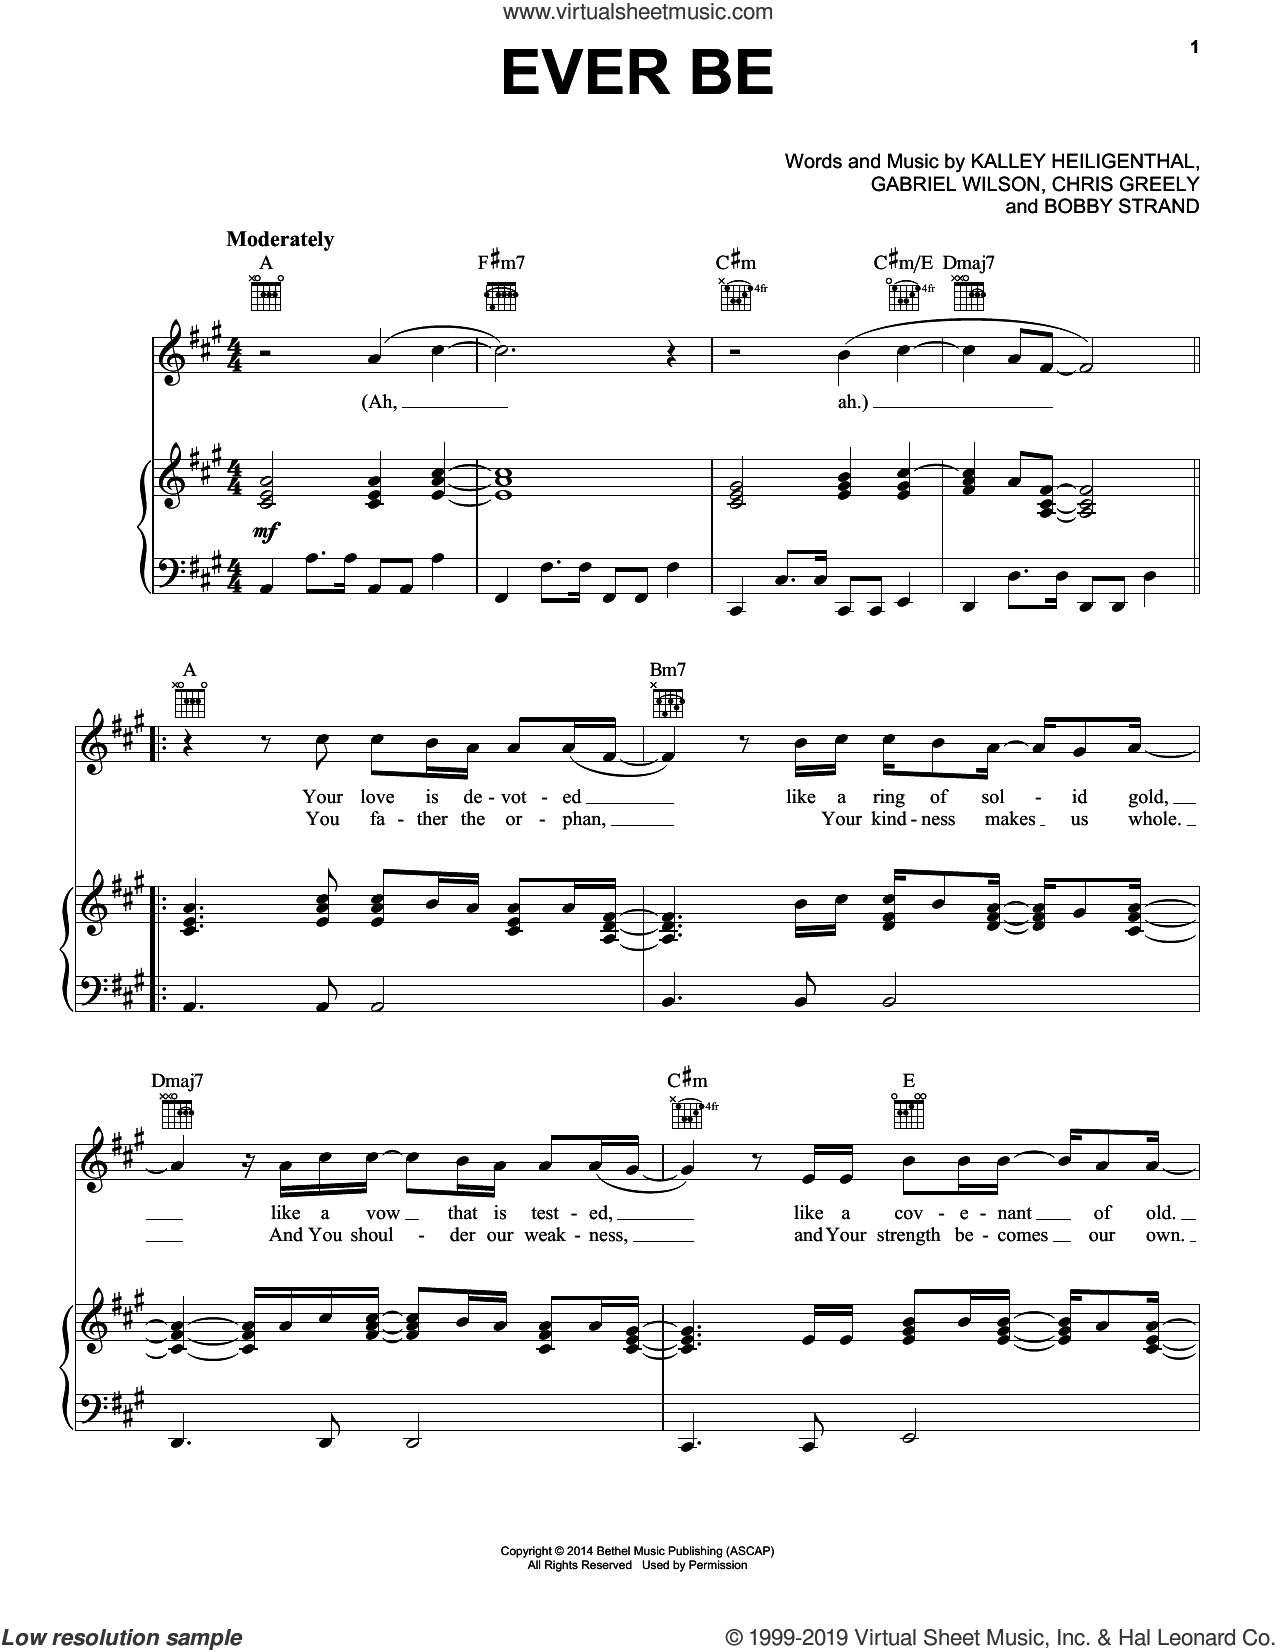 Ever Be sheet music for voice, piano or guitar by Bethel Music, Bobby Strand, Chris Greely, Gabriel Wilson and Kalley Heiligenthal, intermediate skill level